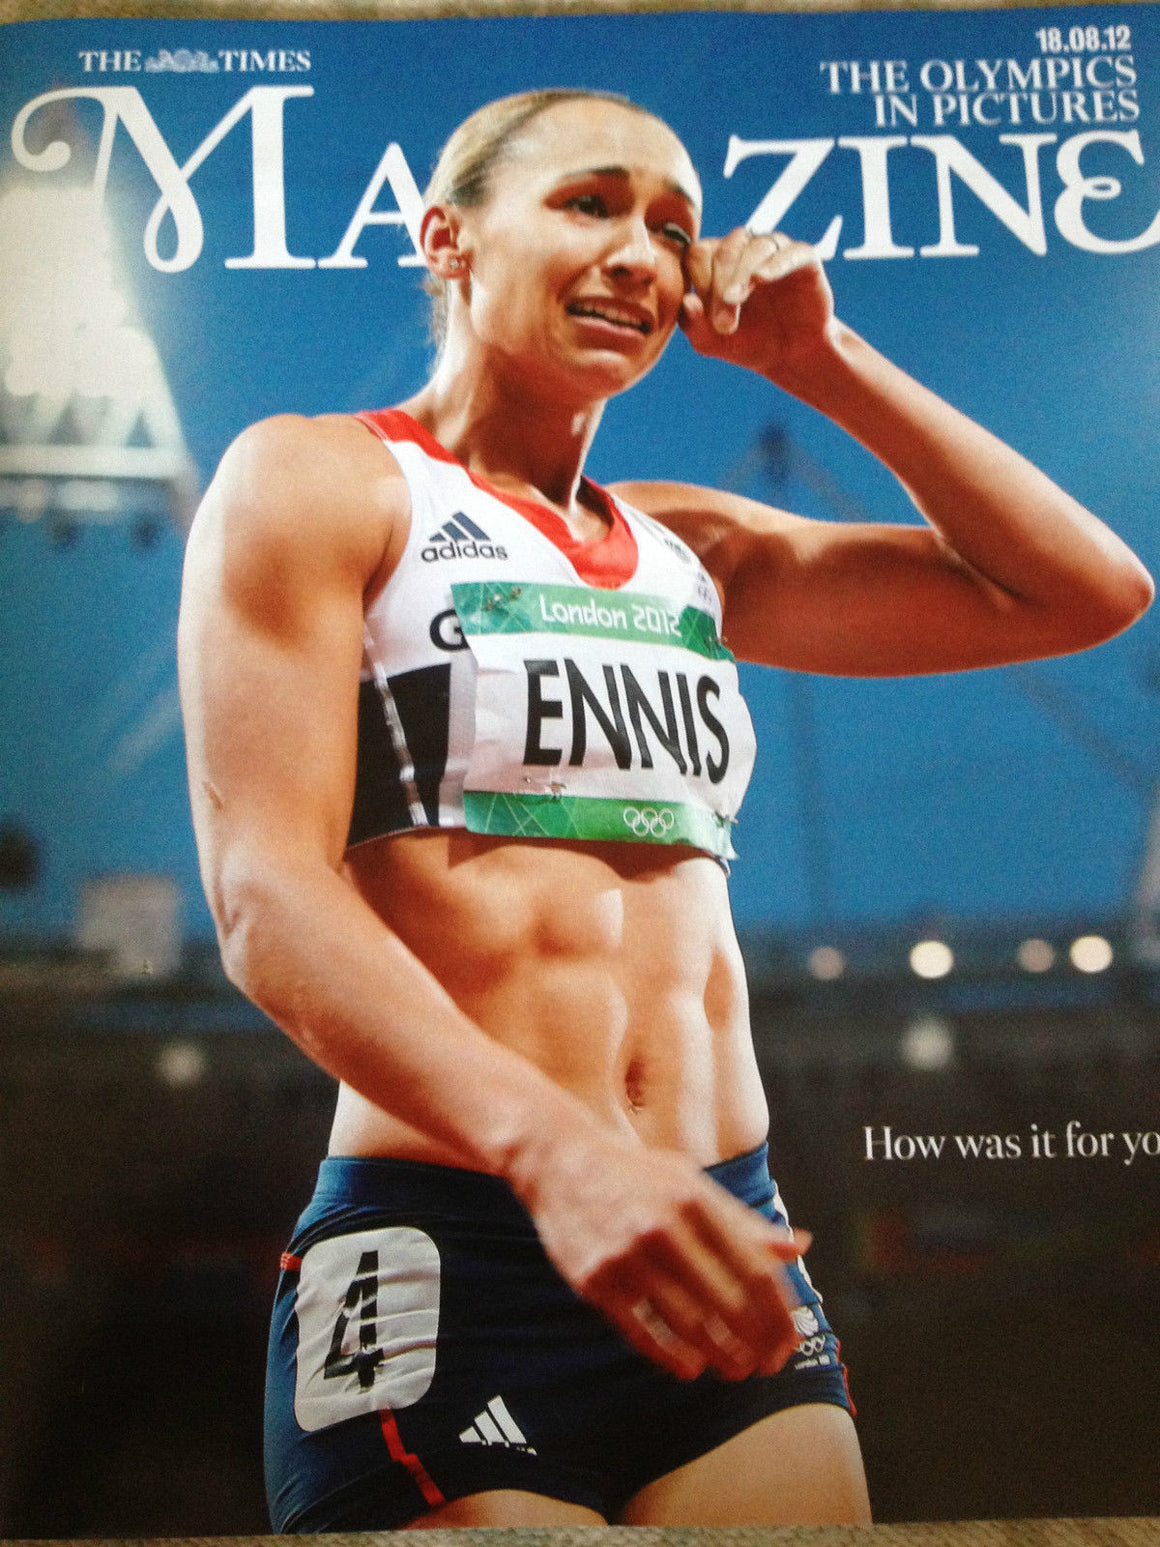 NEW Times Magazine.London 2012 Olympics Pictures.Tom Daley Jessica Ennis 18/8/12